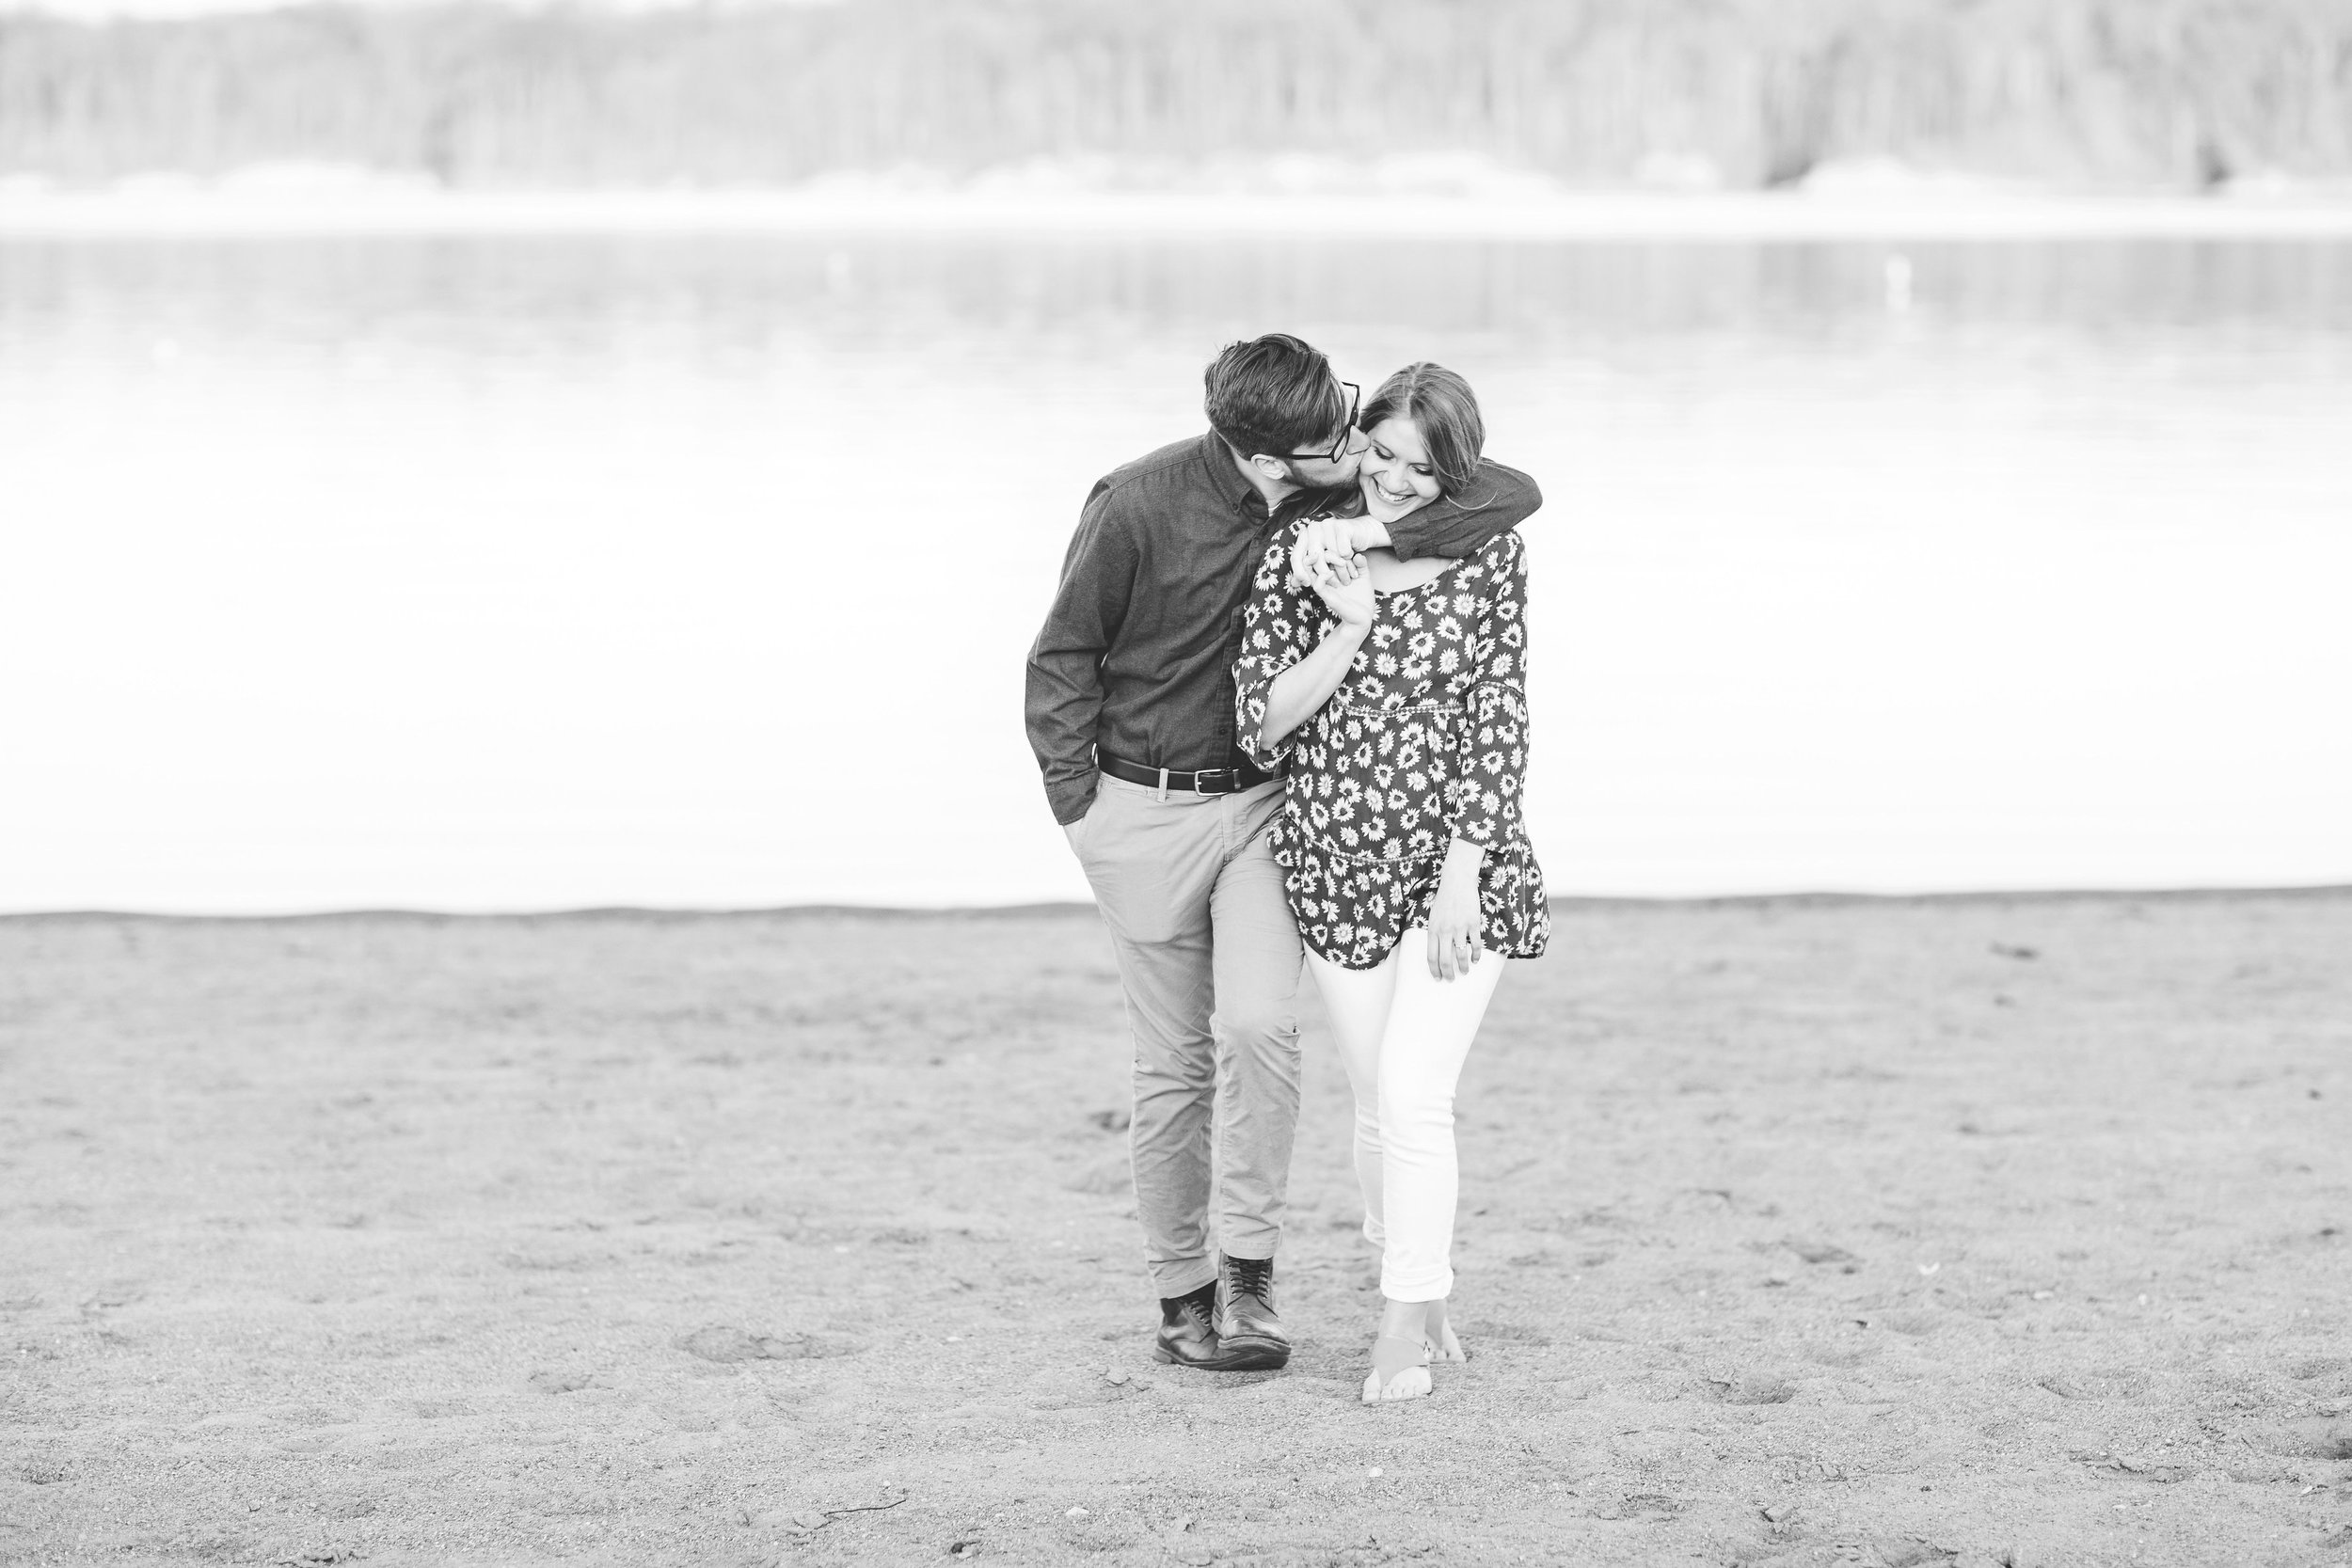 cincinnati wedding photographer caesars creek engagement session lauren day photography-11.jpg